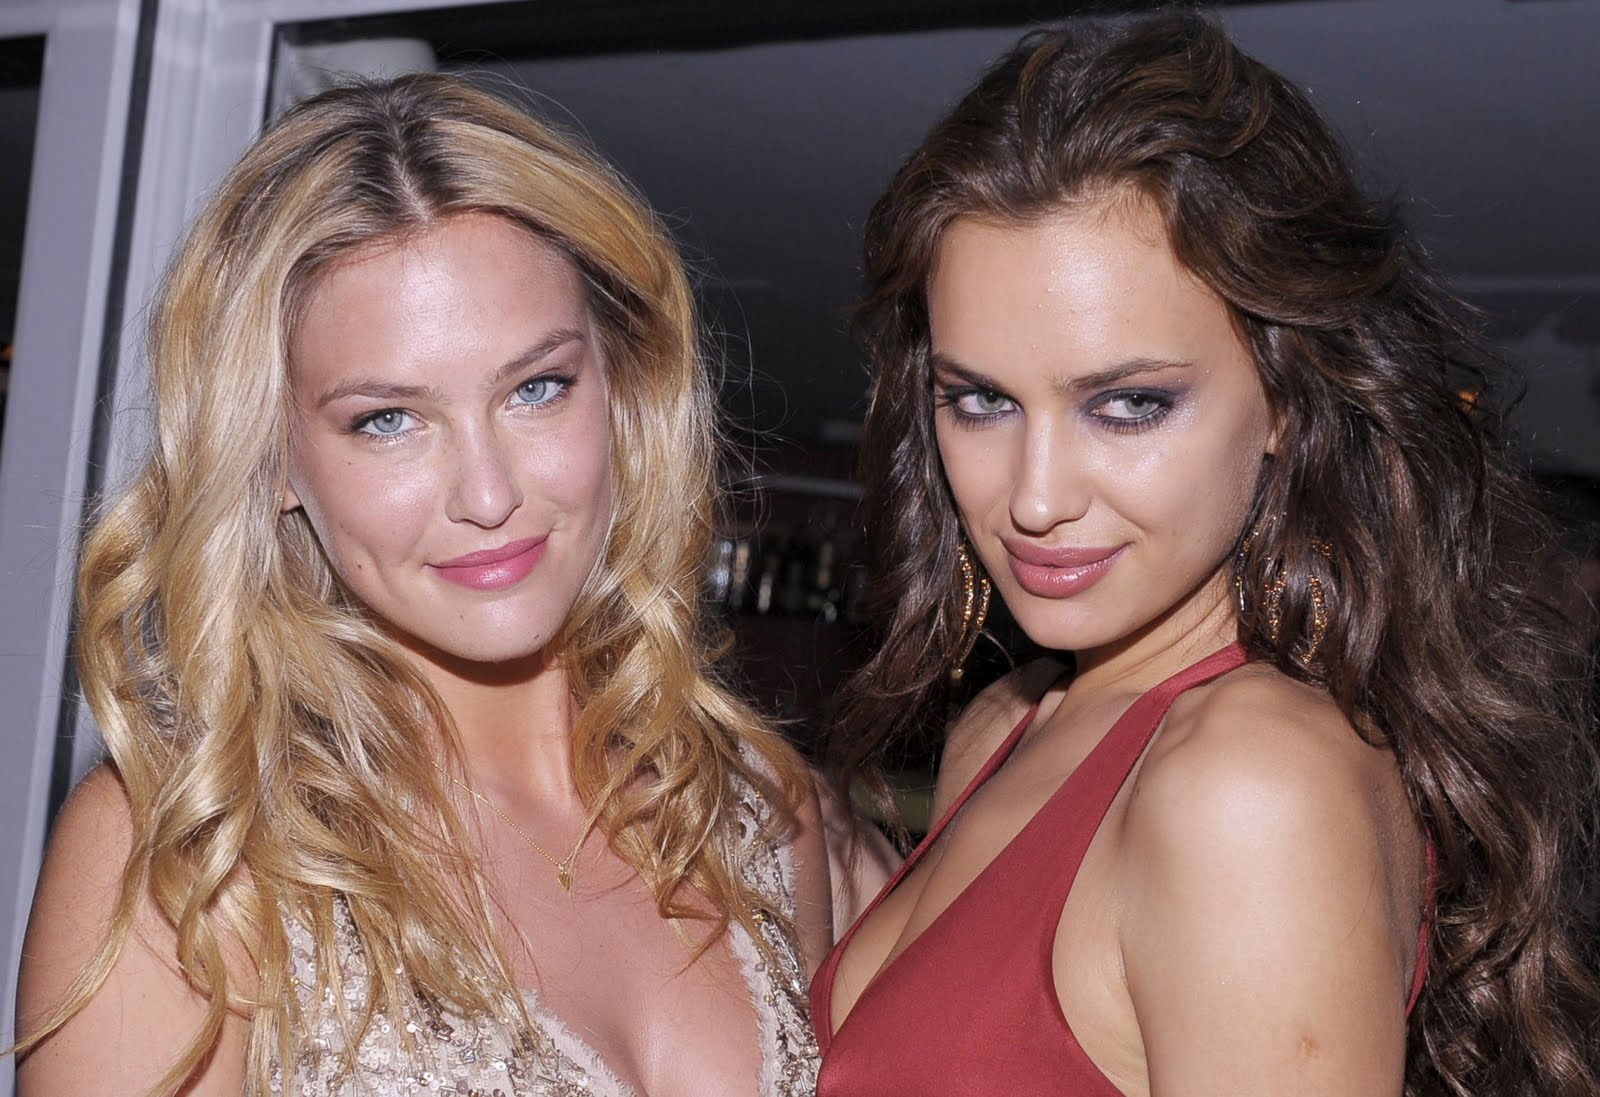 http://4.bp.blogspot.com/-2qieJJ_J3tA/TeuULdrY_yI/AAAAAAAAAA0/TcAi1p2svFM/s1600/Actress-Bar-Refaeli-at-Private-Dinner-on-Cavalli-Yacht-in-Cannes-0ghvjy02.jpg